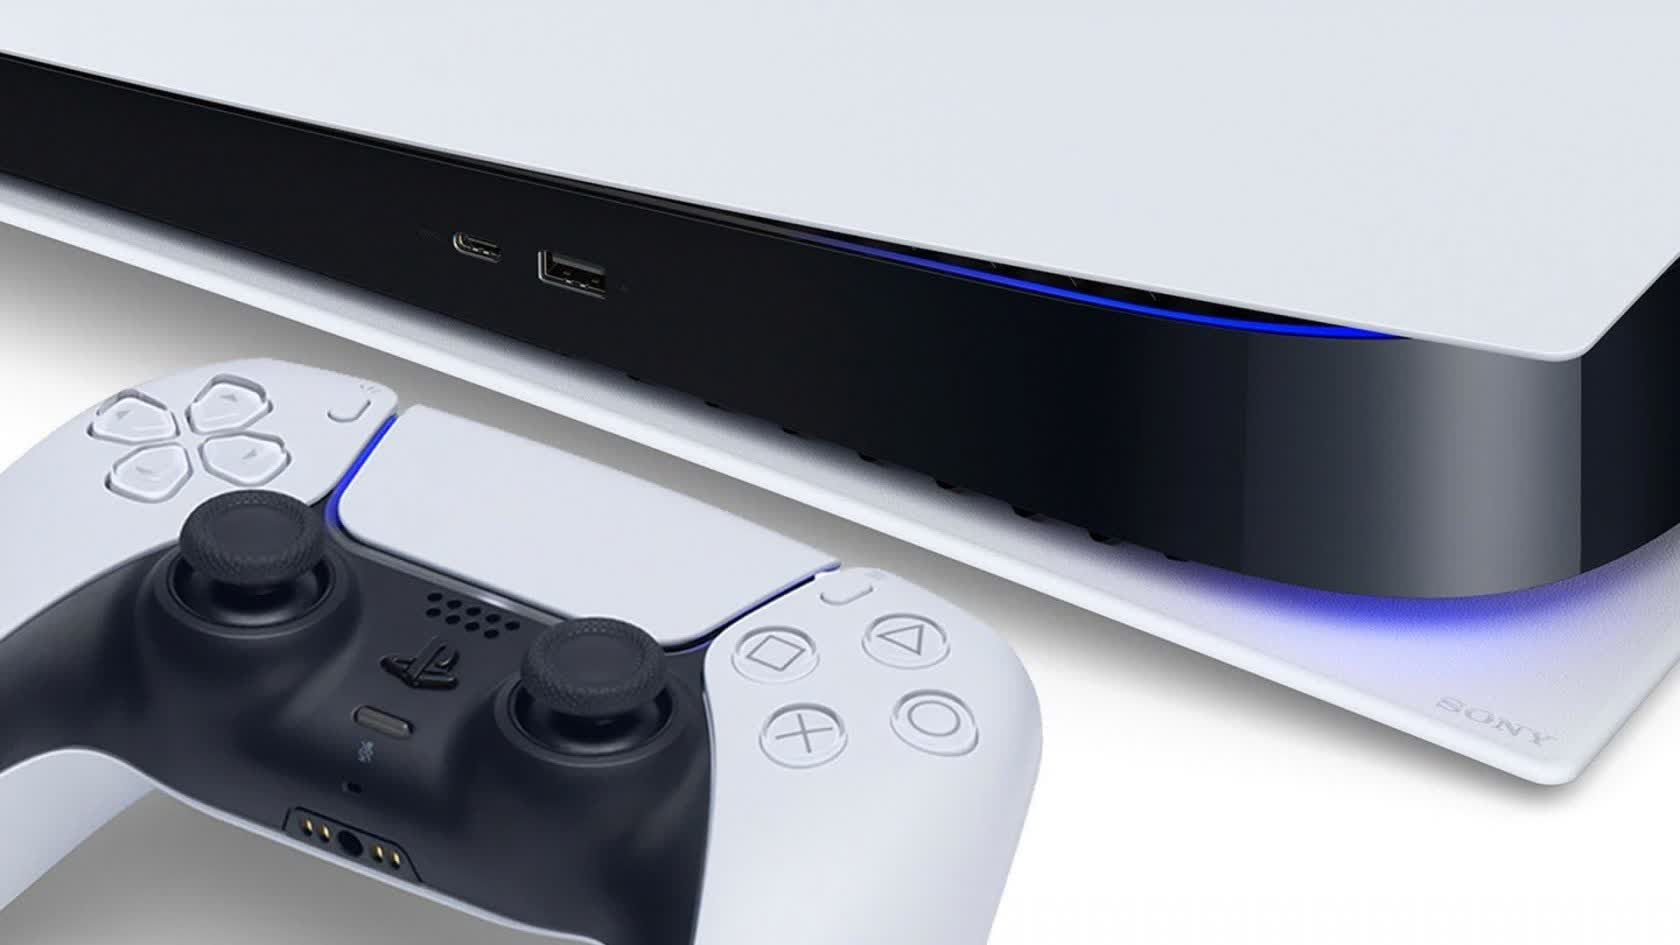 New Remote Play app will let you stream your PS5 games to your PS4